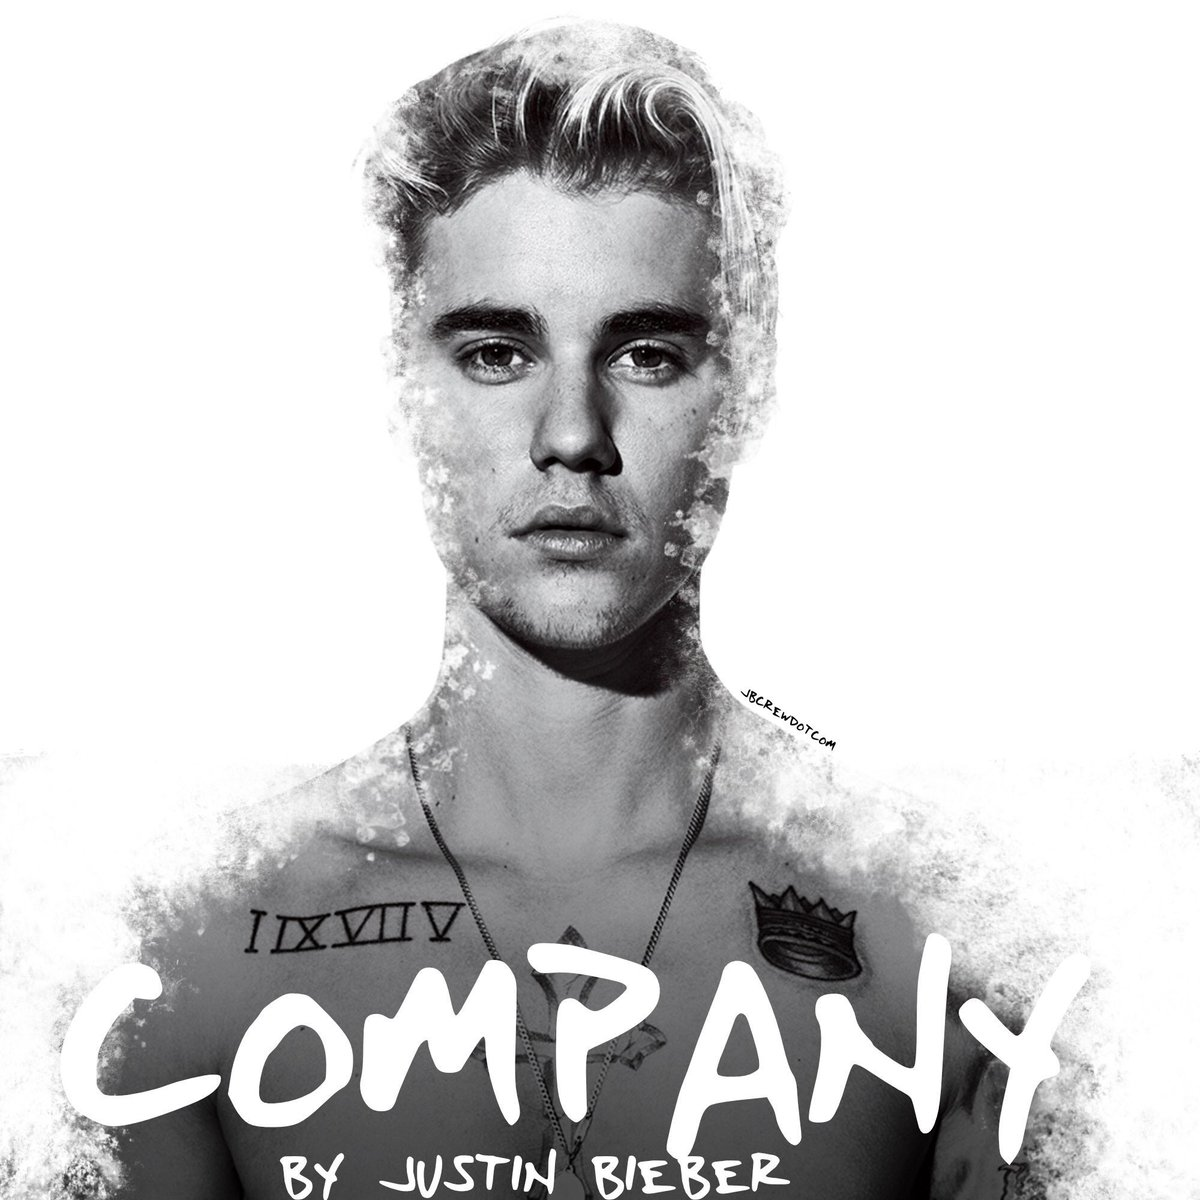 "Atlanta songwriter talks about co-writing the new @justinbieber song, ""Company."" https://t.co/AjncBnmo8E https://t.co/gDuEw0Zrif"